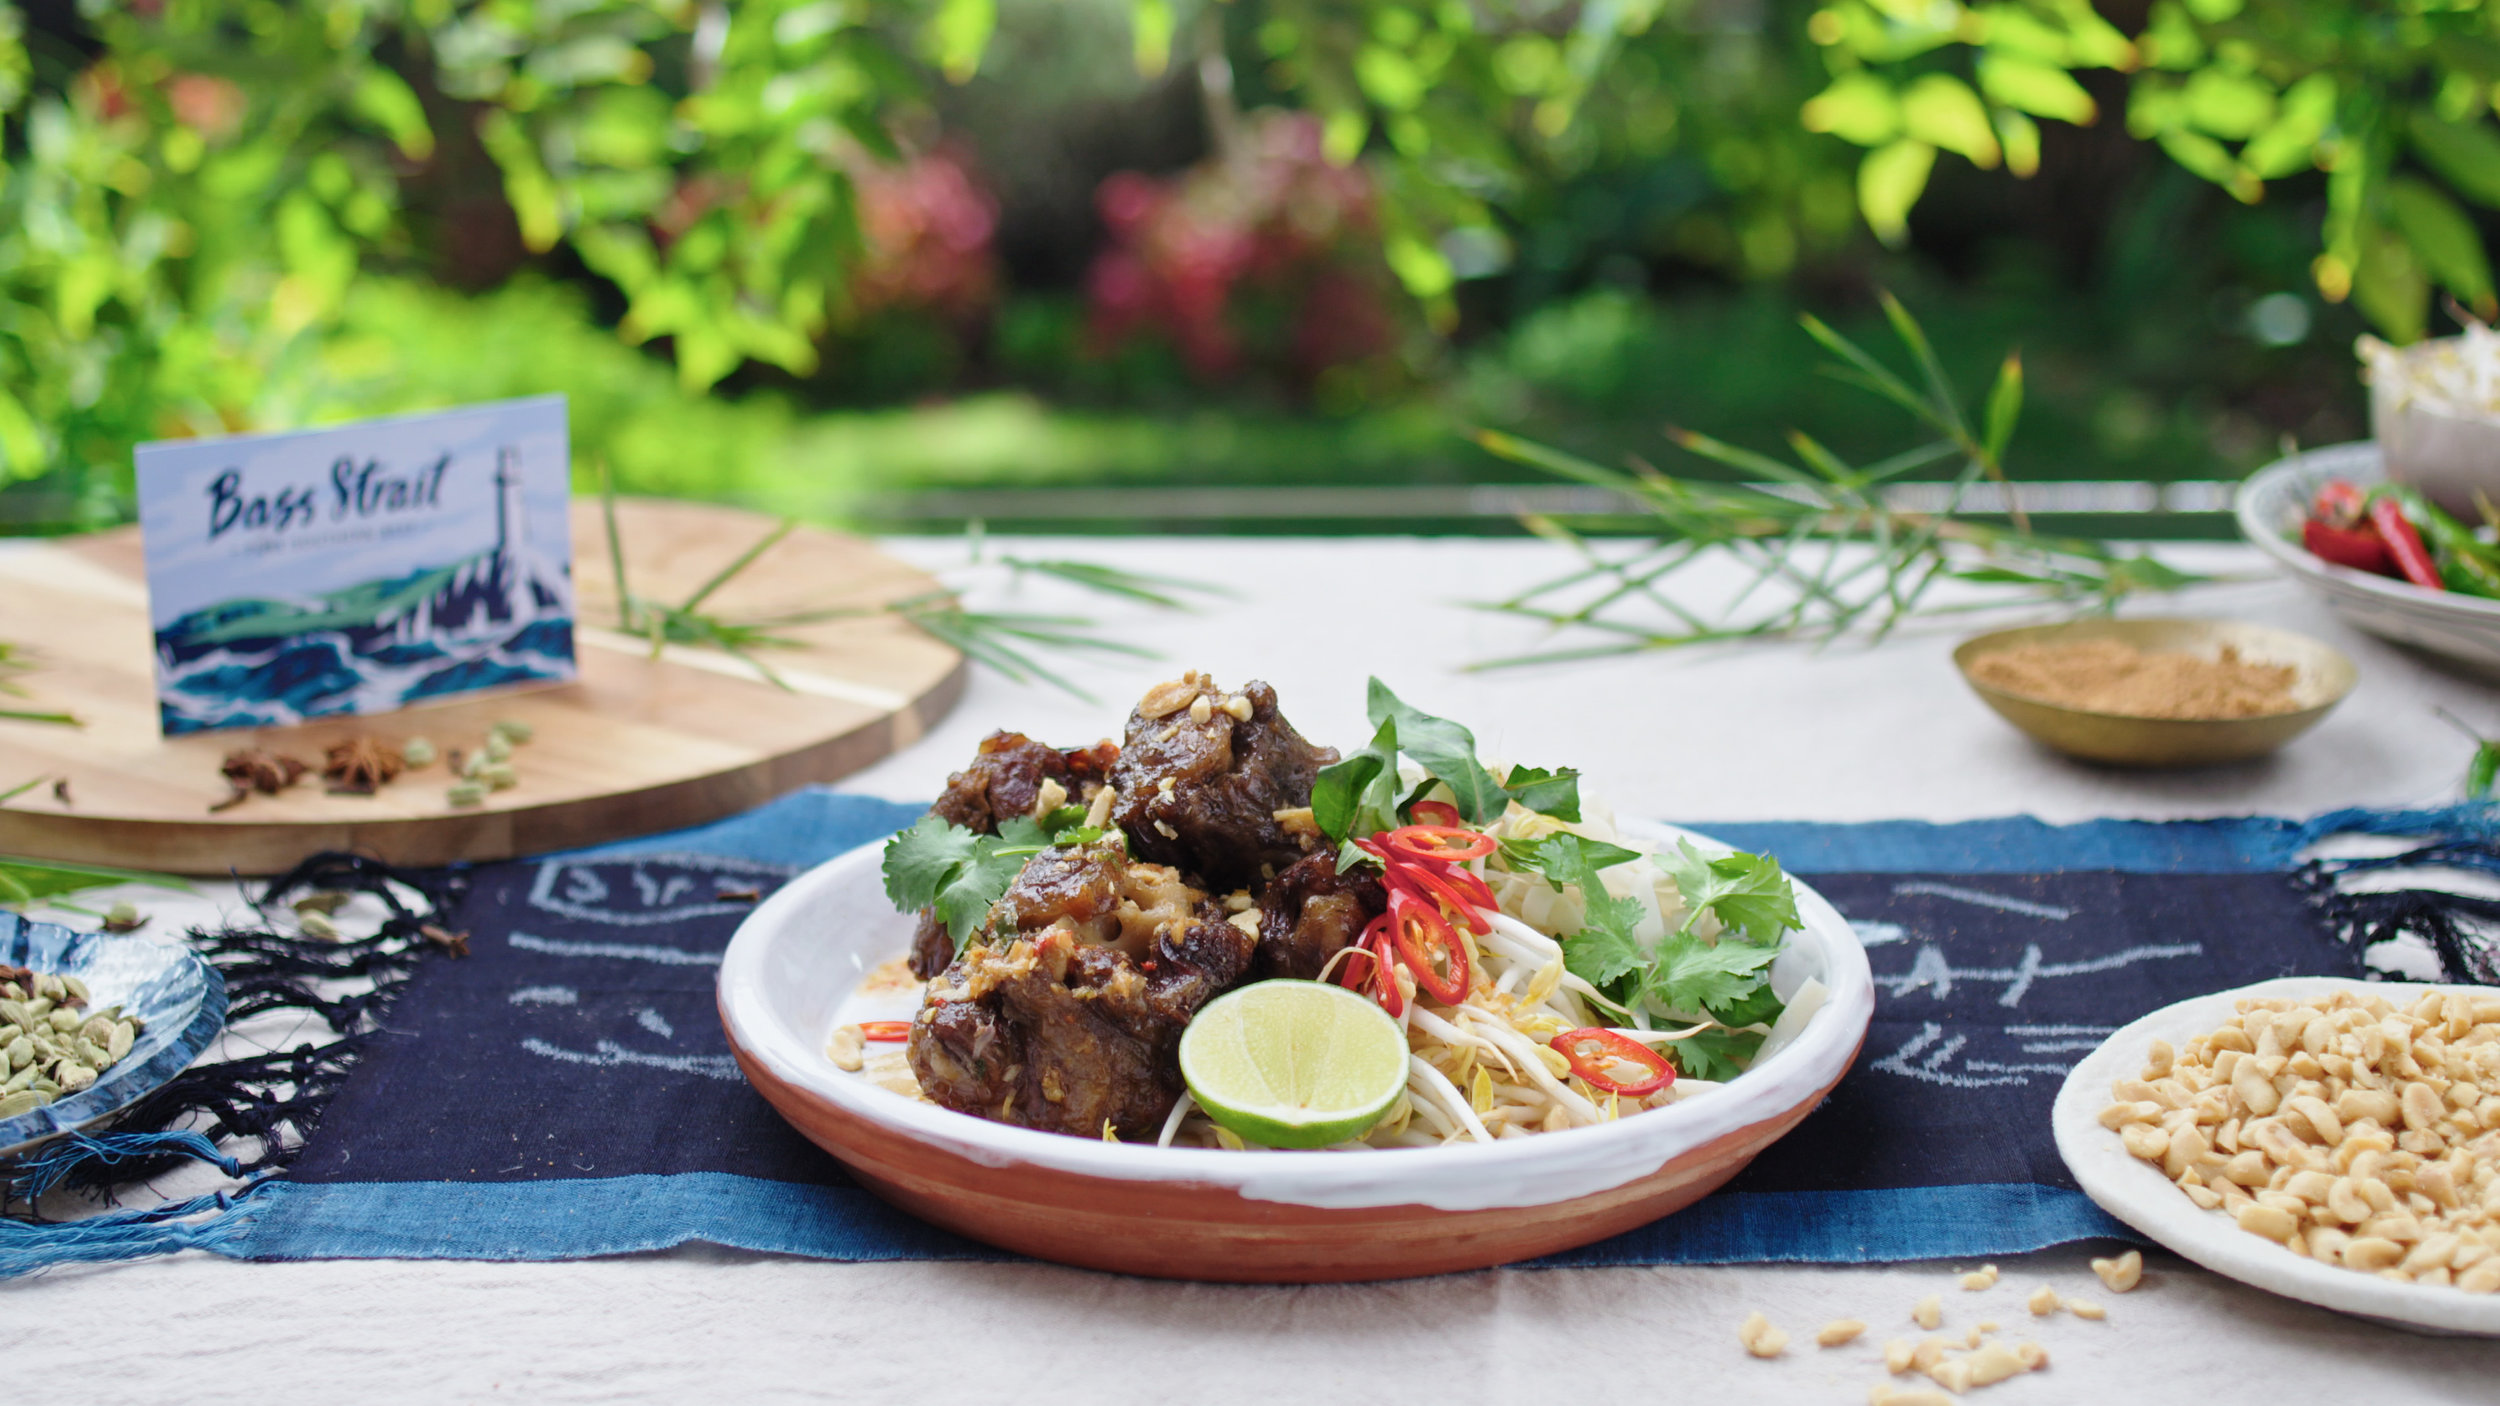 Spice Braised Oxtail with Rice Noodles